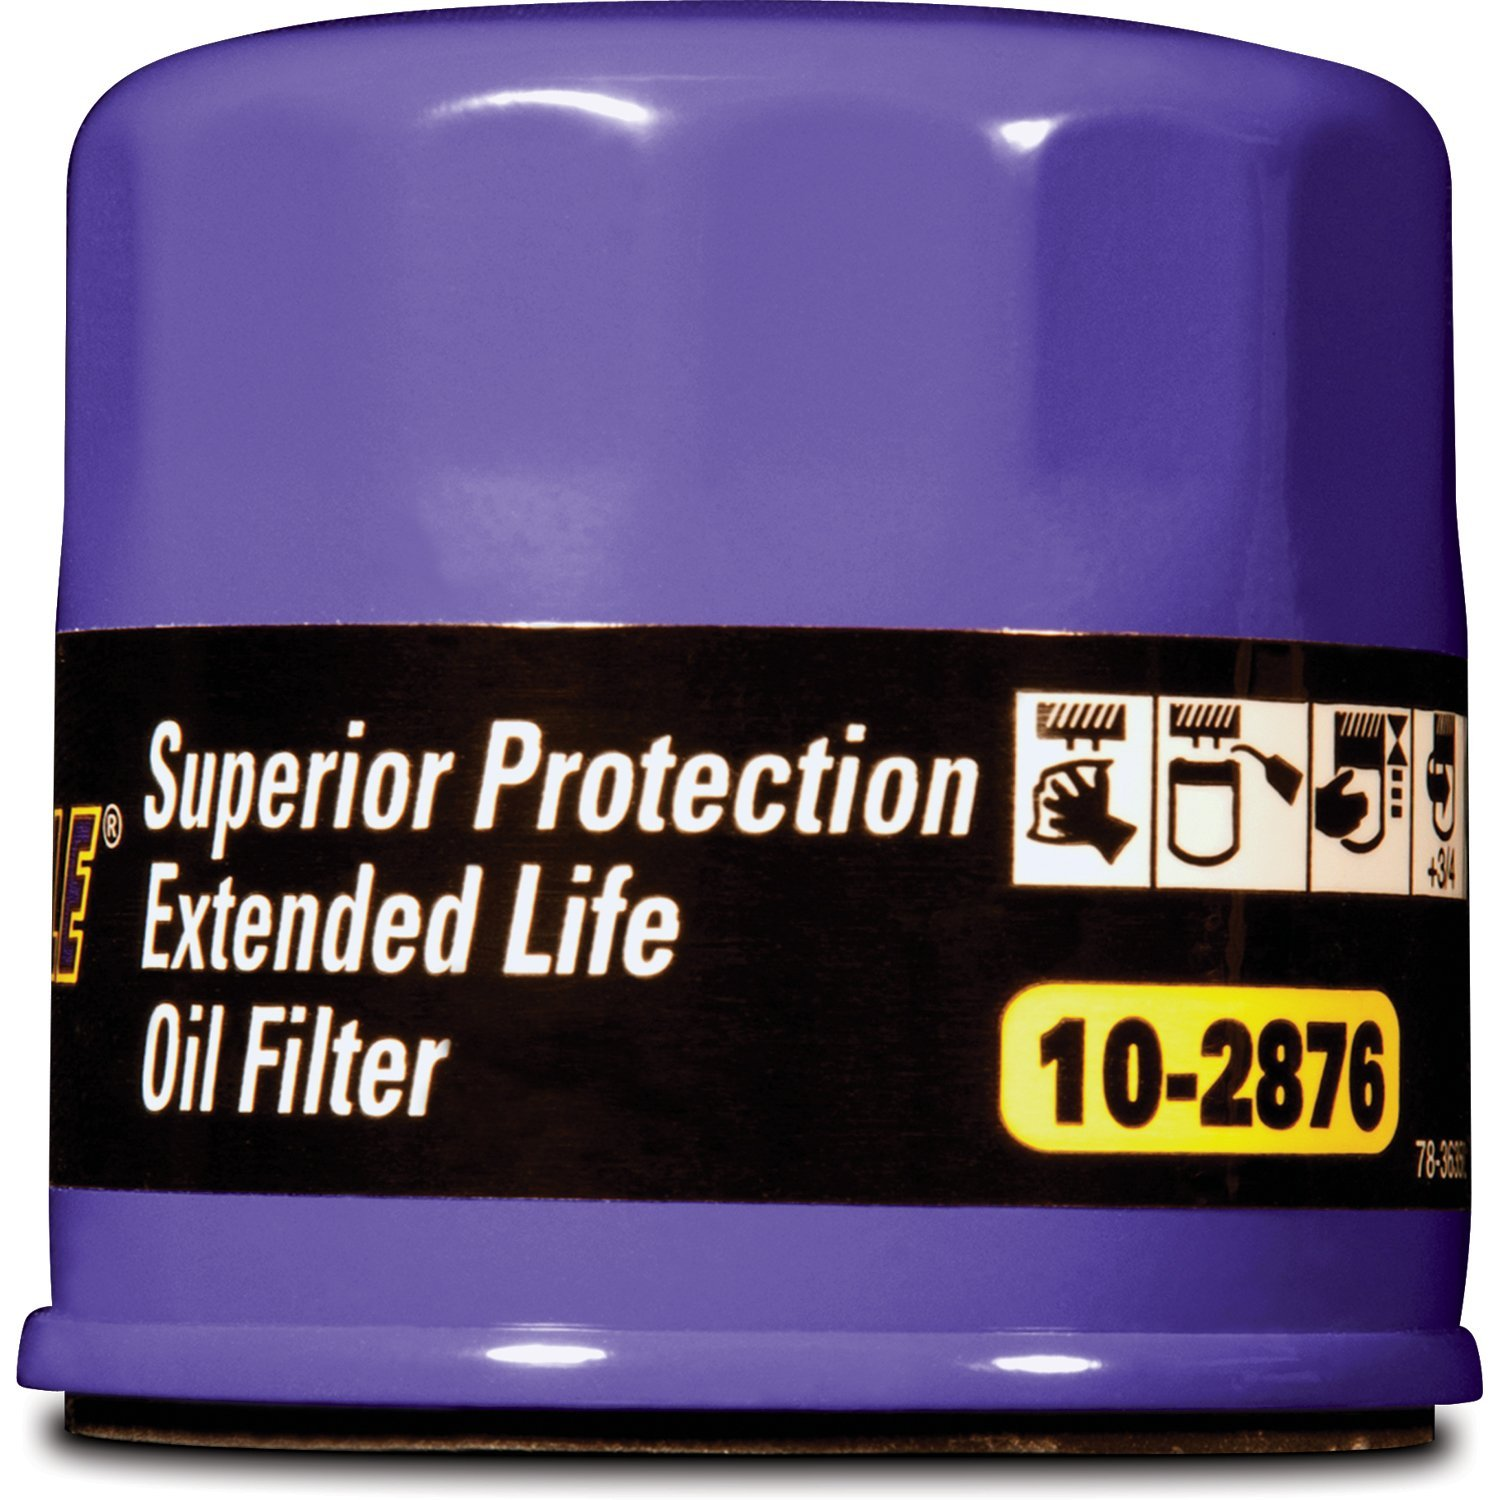 Royal Purple 356753 356753 Extended Life Oil Filter - 10-2876